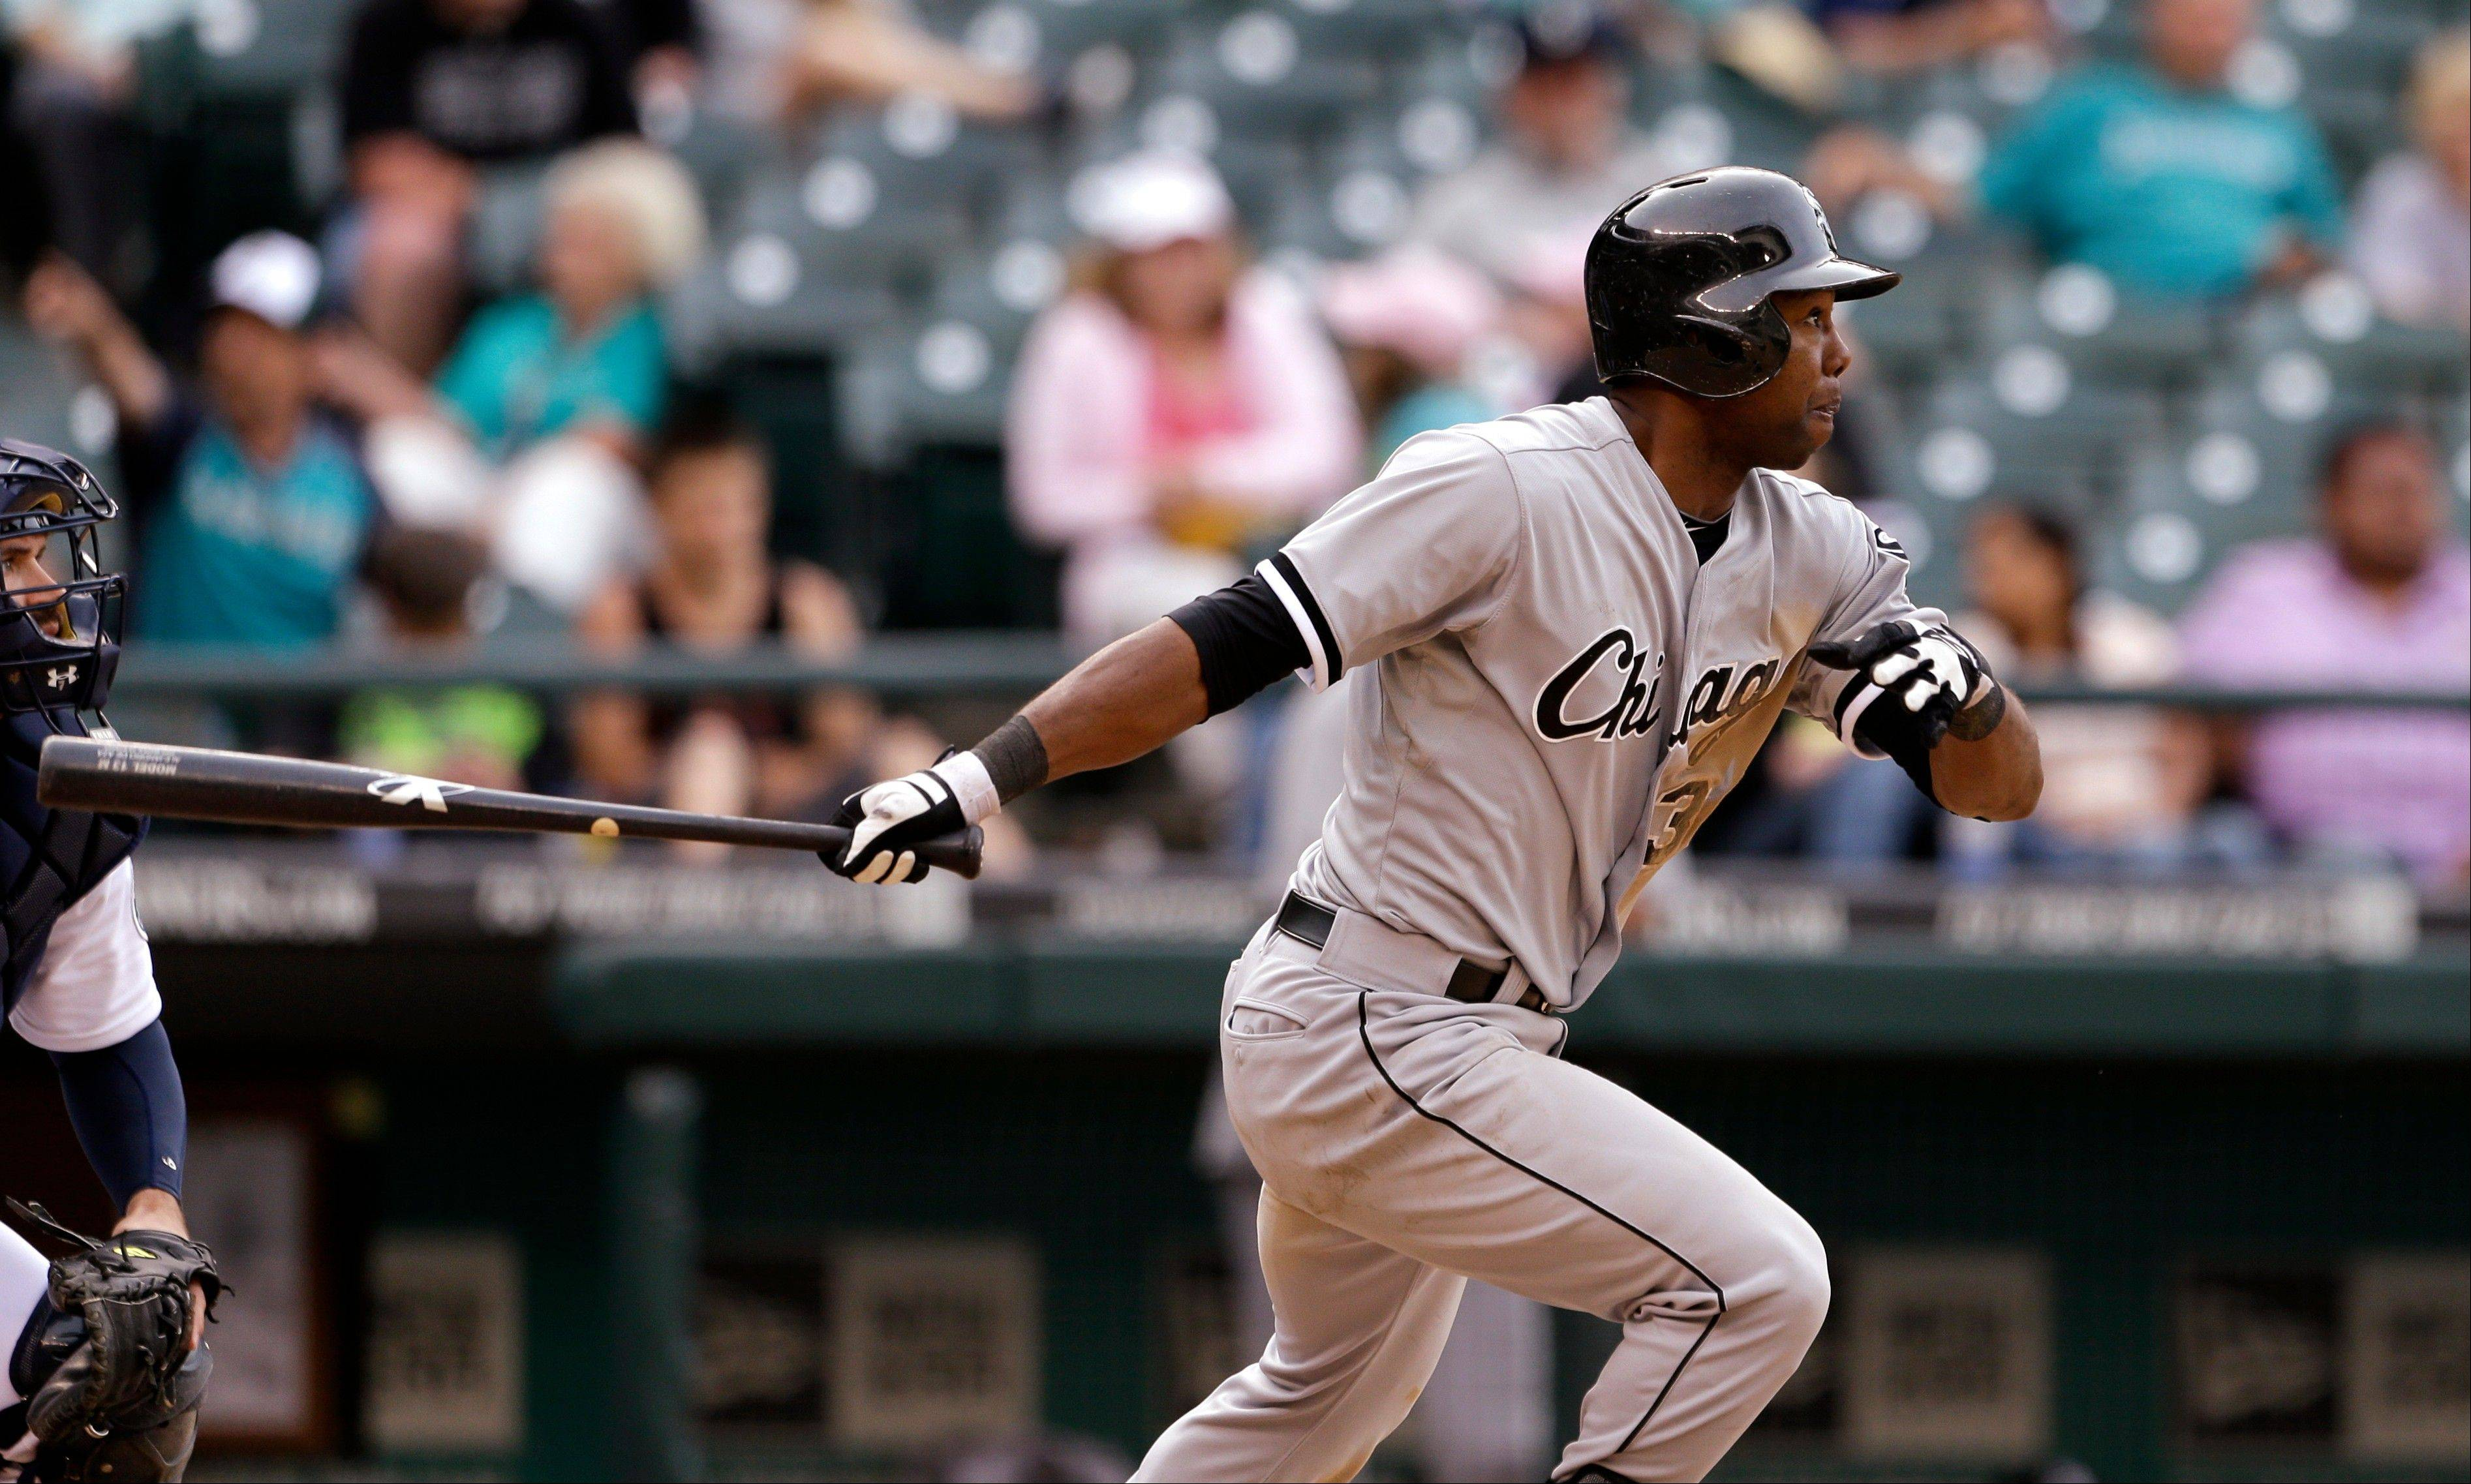 Chicago White Sox�s Alejandro De Aza drives in a run against the Seattle Mariners in the 16th inning of a baseball game on Wednesday, June 5, 2013, in Seattle. (AP Photo/Elaine Thompson)